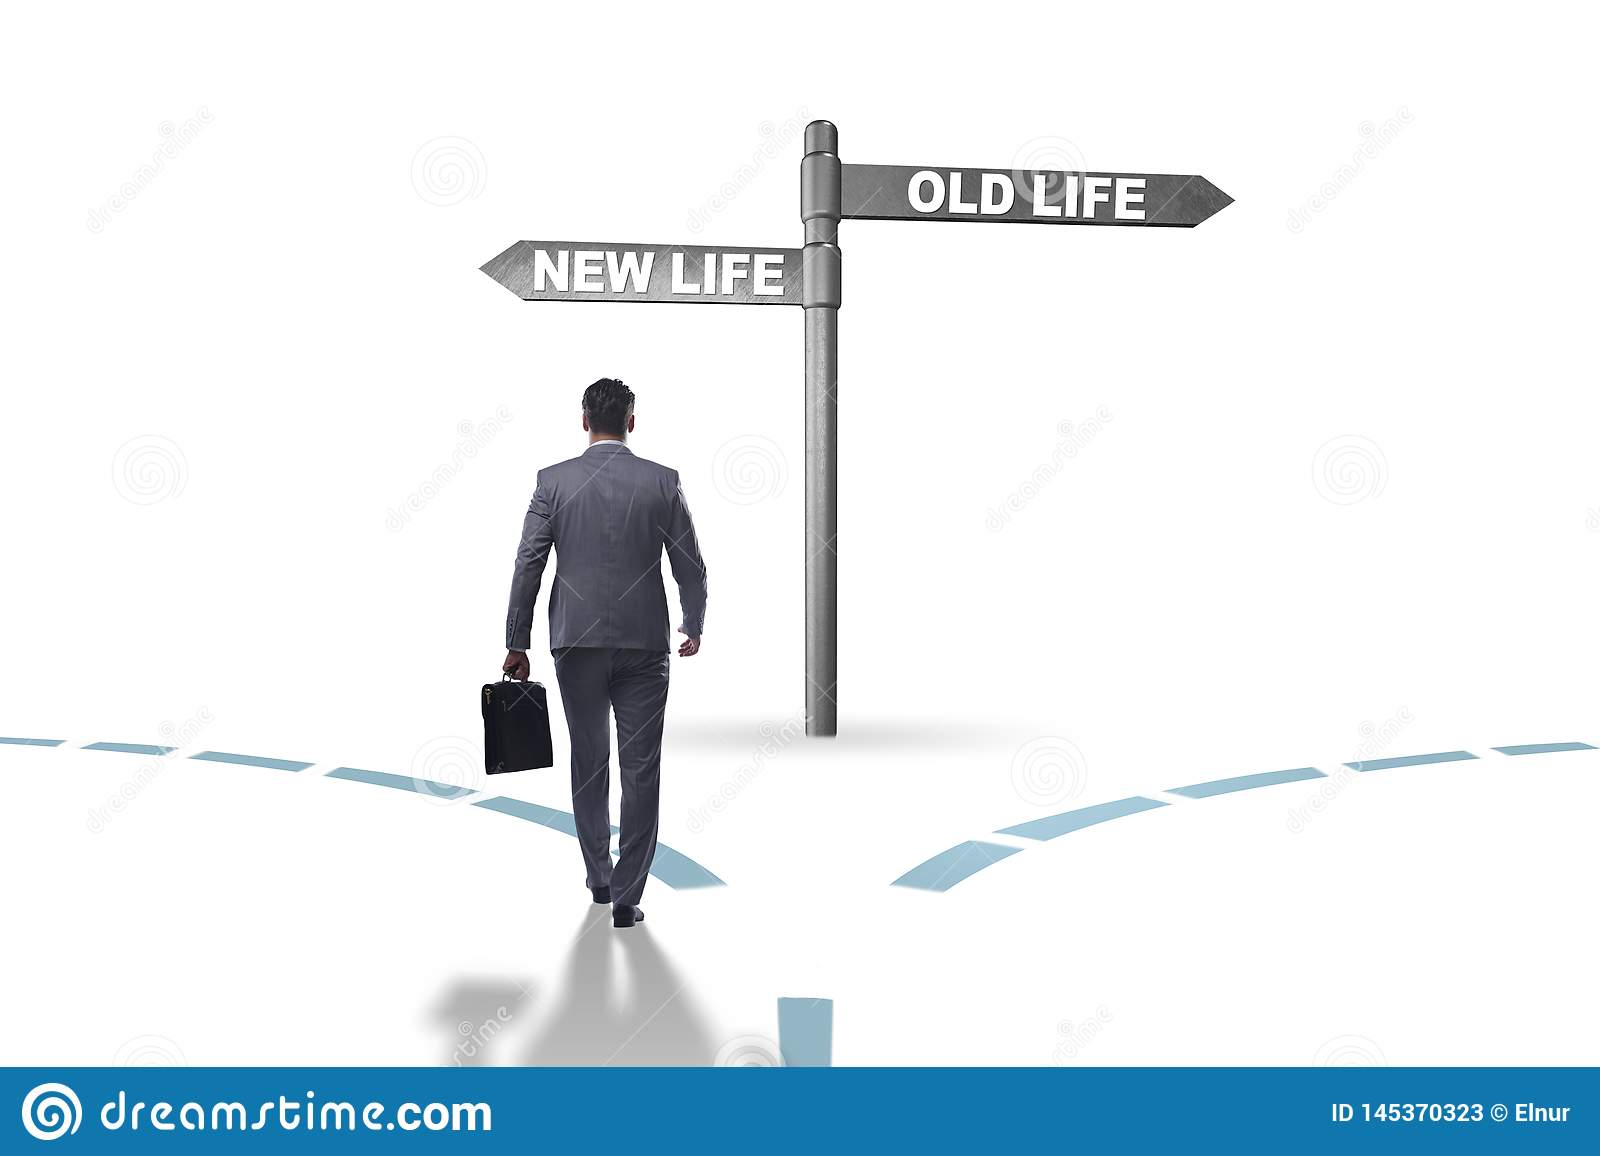 The concept of new and old life